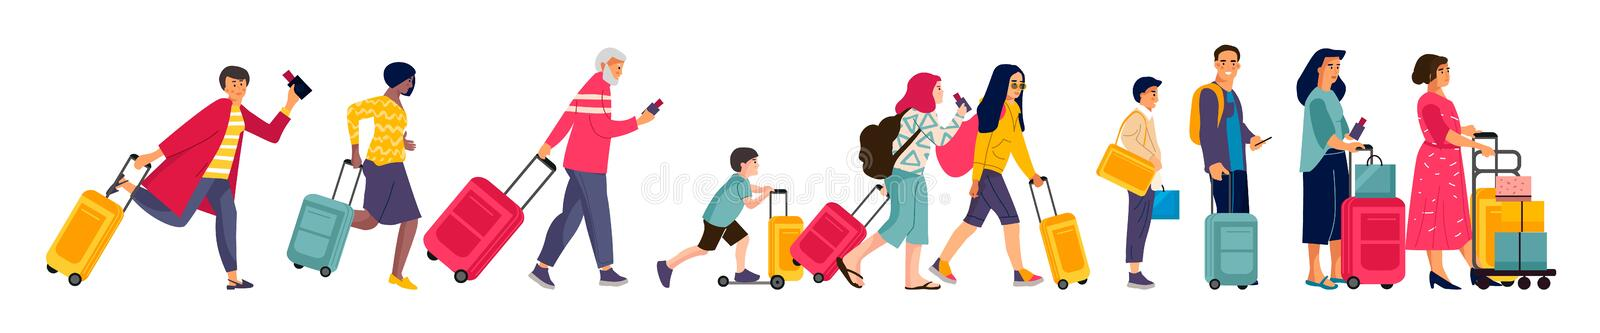 Travelers group. Tourists in line baggage and suitcases, men women and children in airport queue. Vector illustration flat colorful image hurrying happy people royalty free illustration